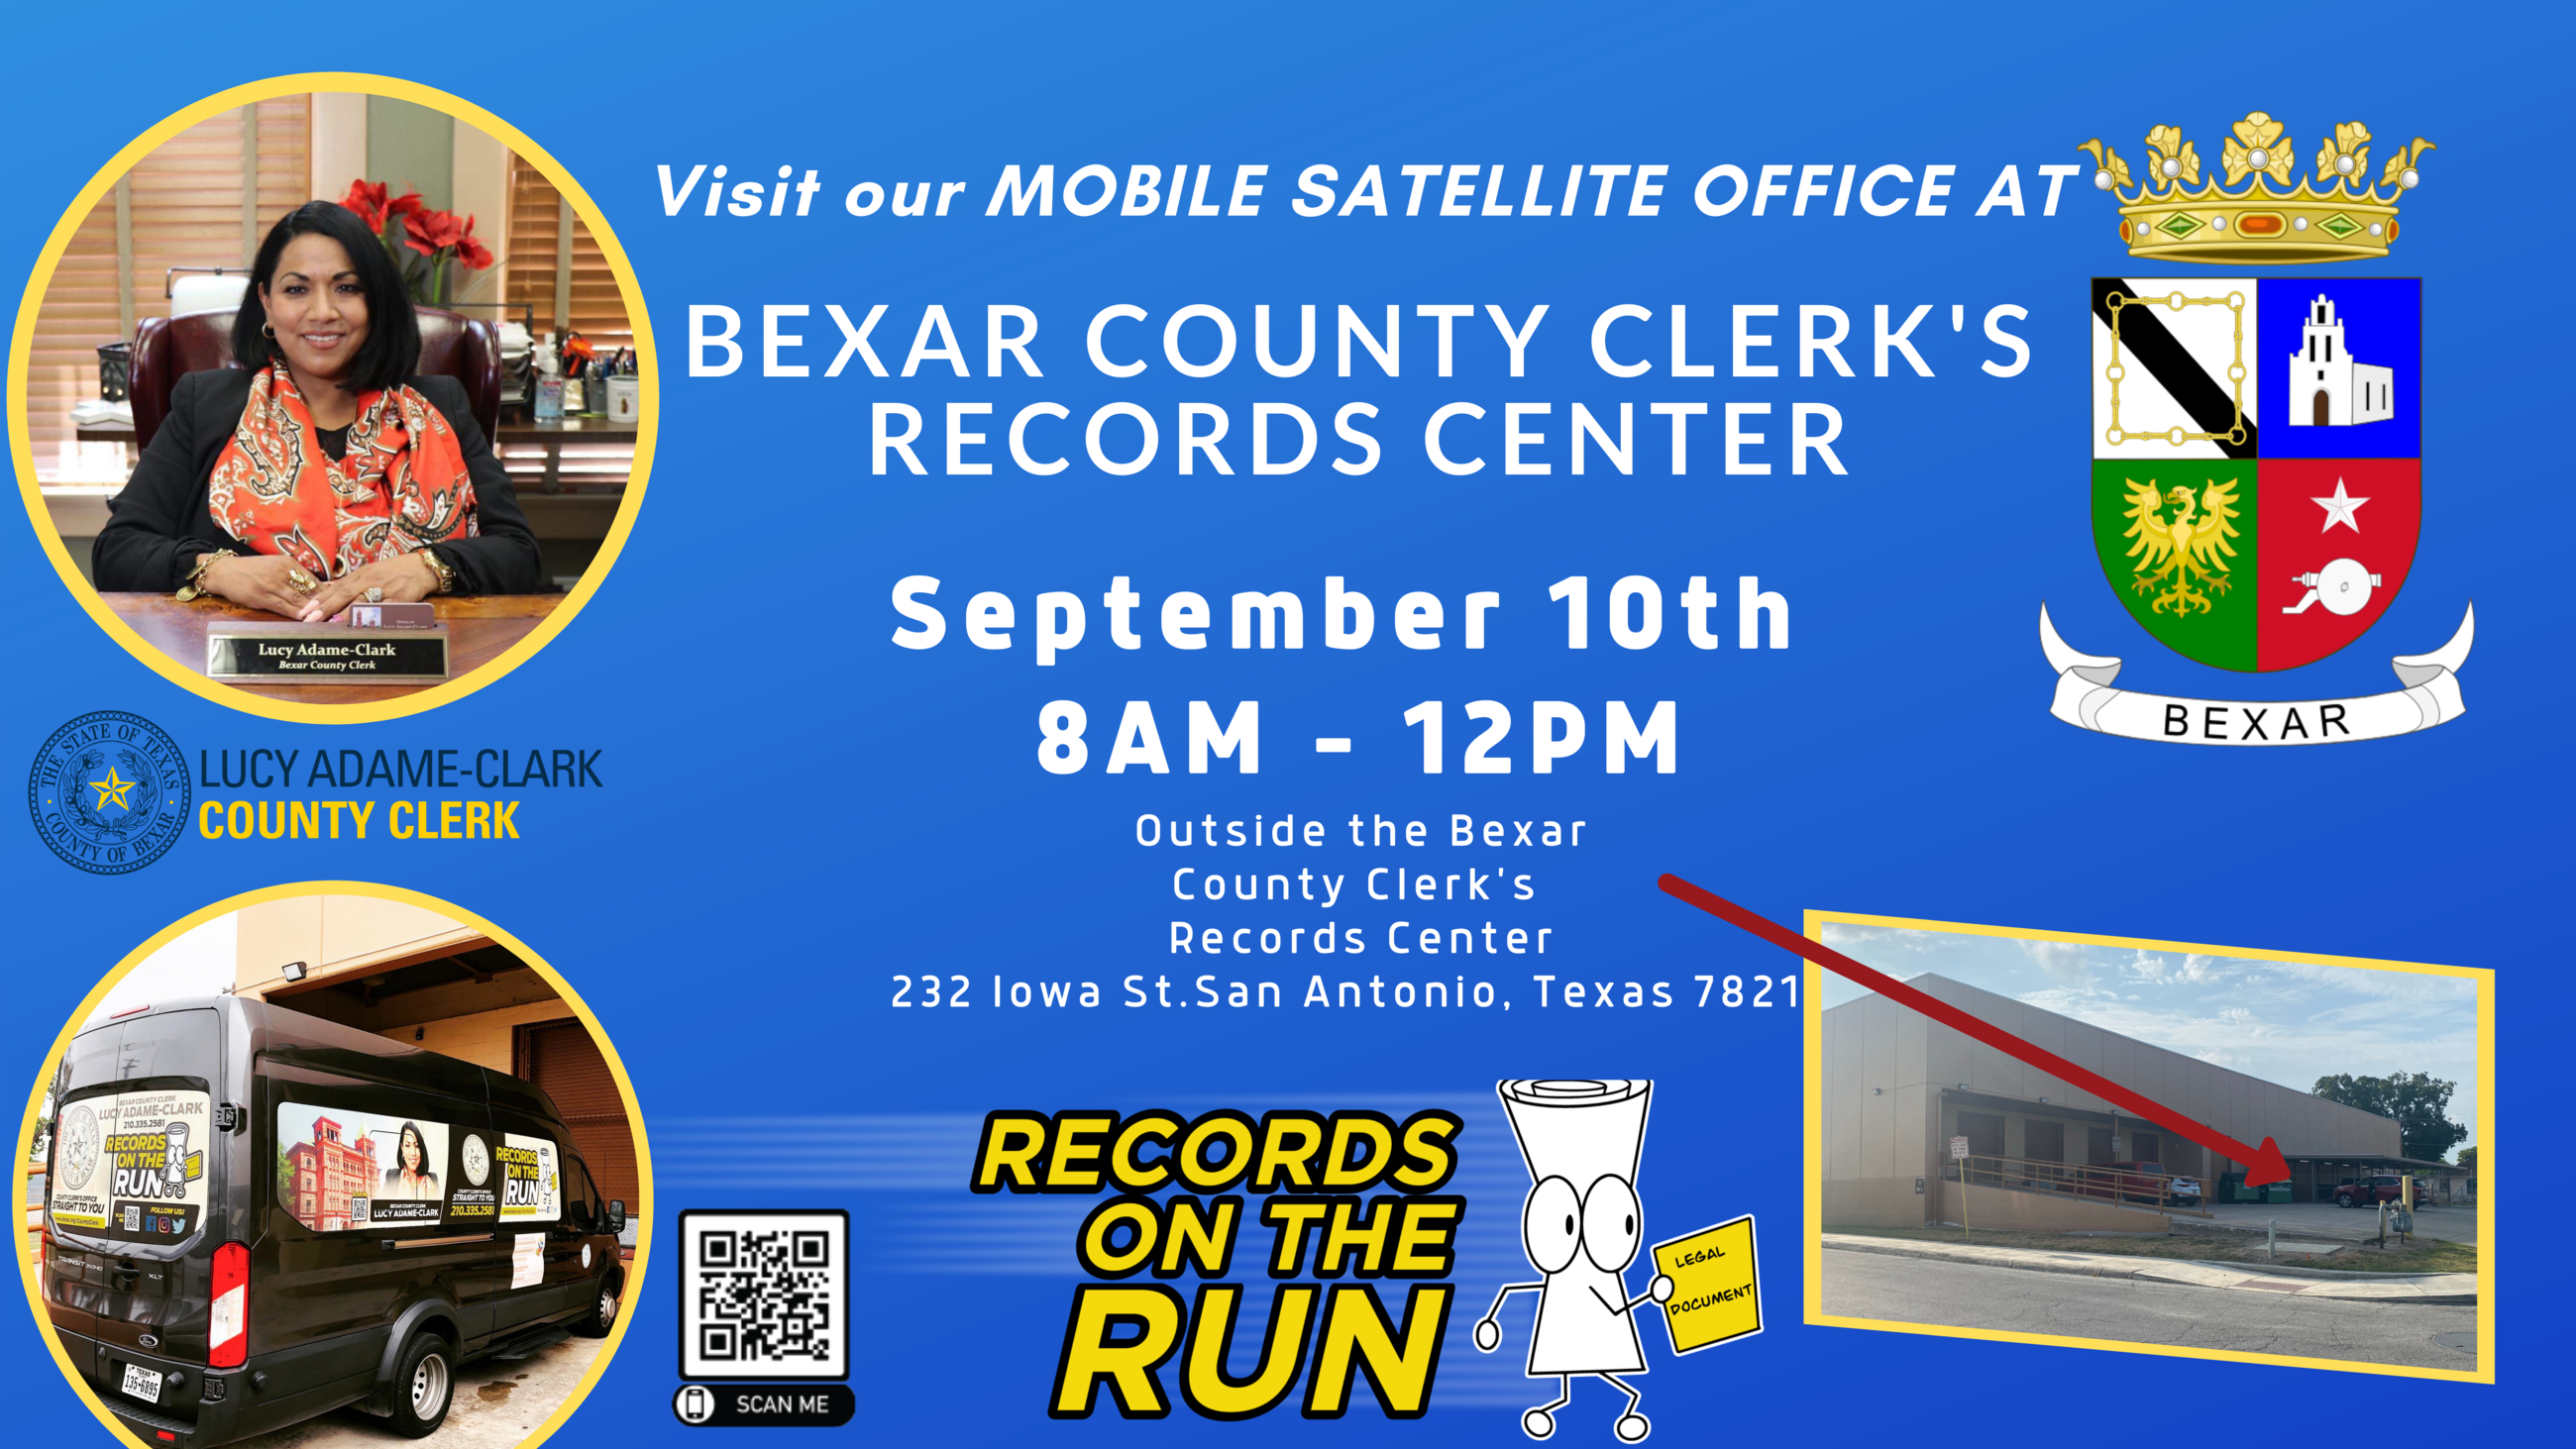 Mobile Satellite Office at Records Center Flyer